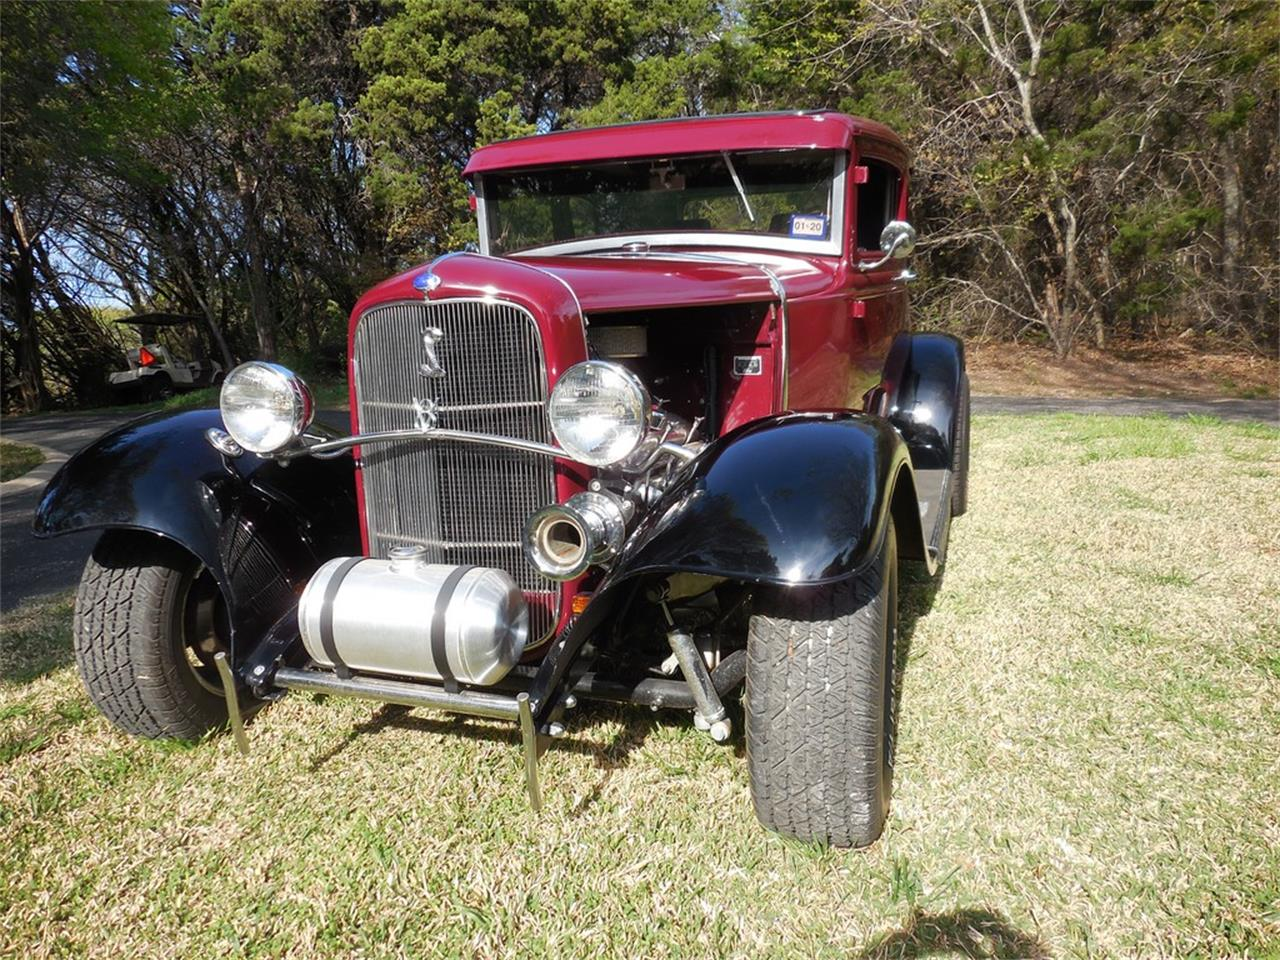 Large Picture of Classic 1932 Ford Coupe located in Texas - $39,500.00 Offered by a Private Seller - PRVF